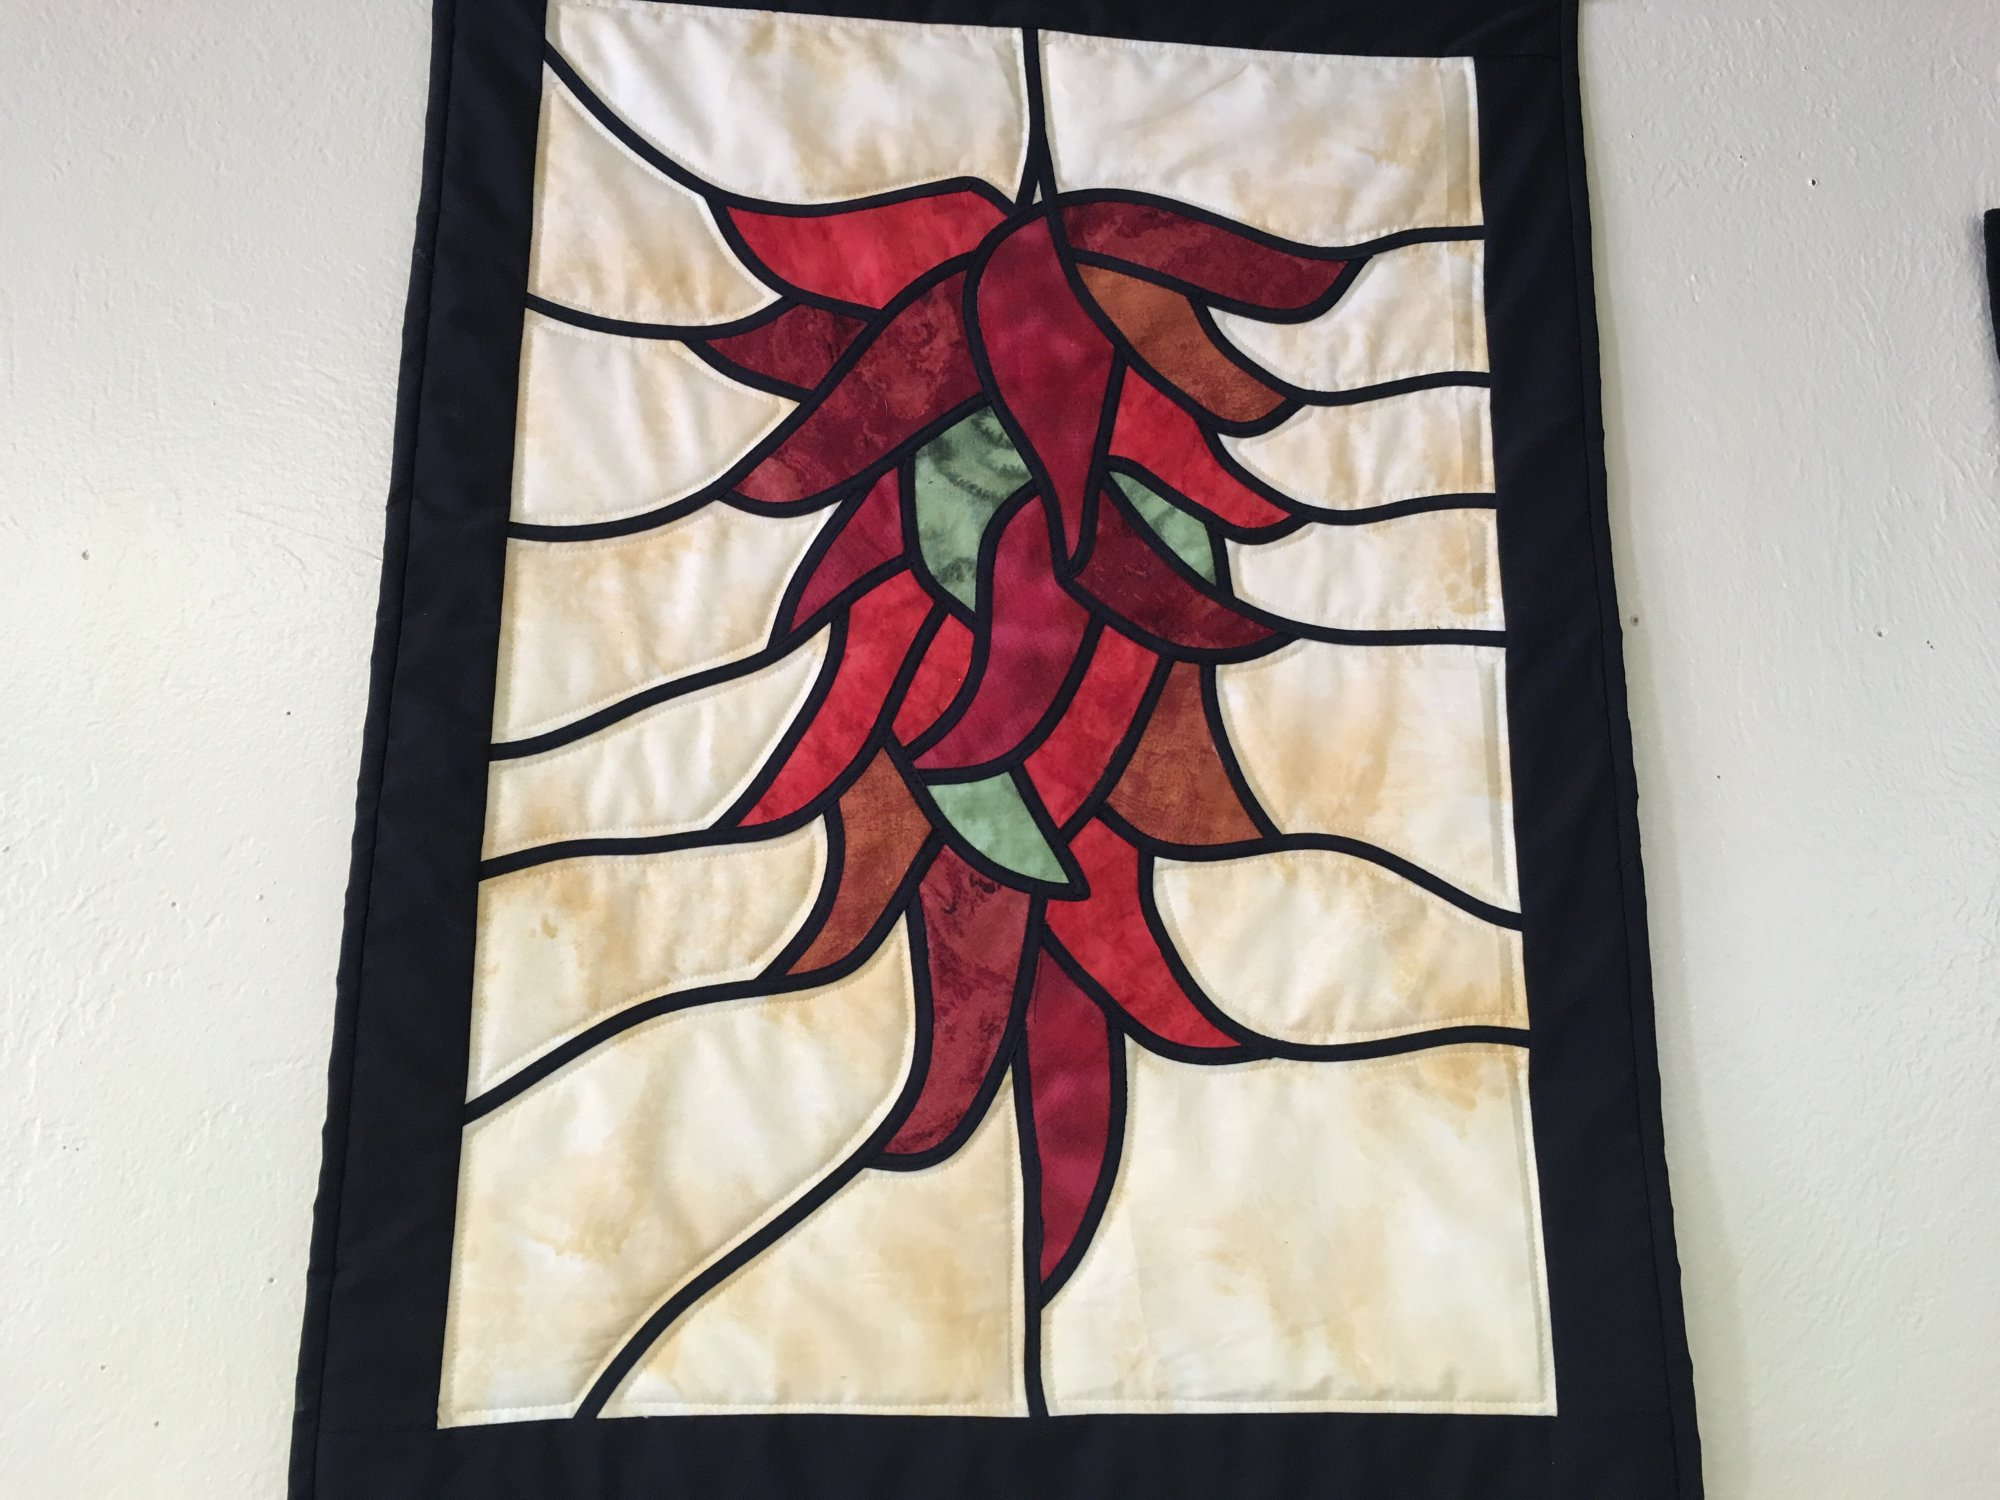 CHILI PEPPERS STAINED GLASS PATTERN by J. Wilson Designs